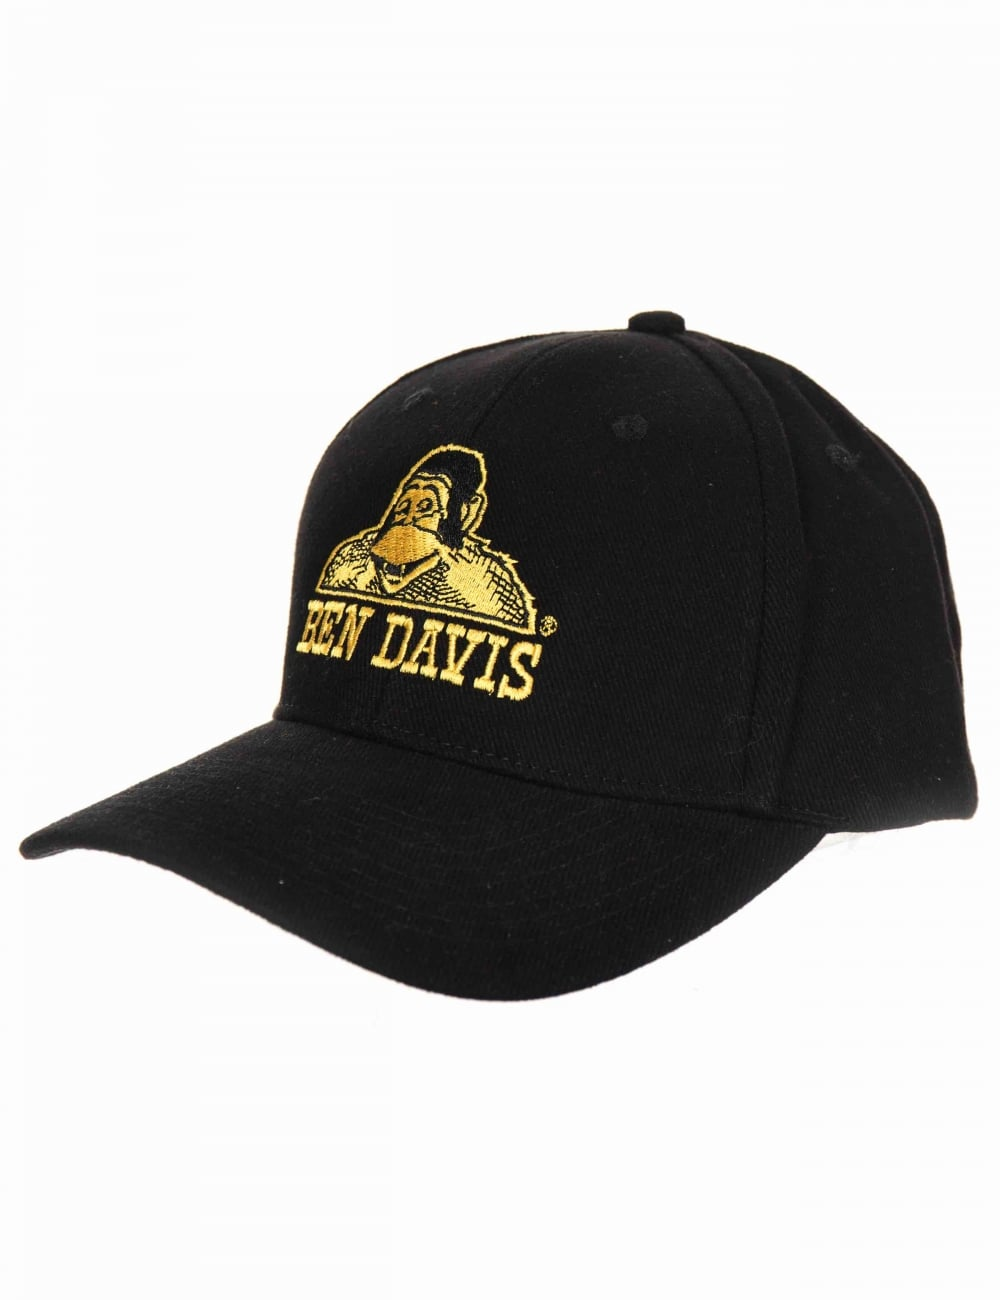 79204c94 Ben Davis Classic Logo Baseball Cap - Black/Gold - Hat Shop from Fat ...